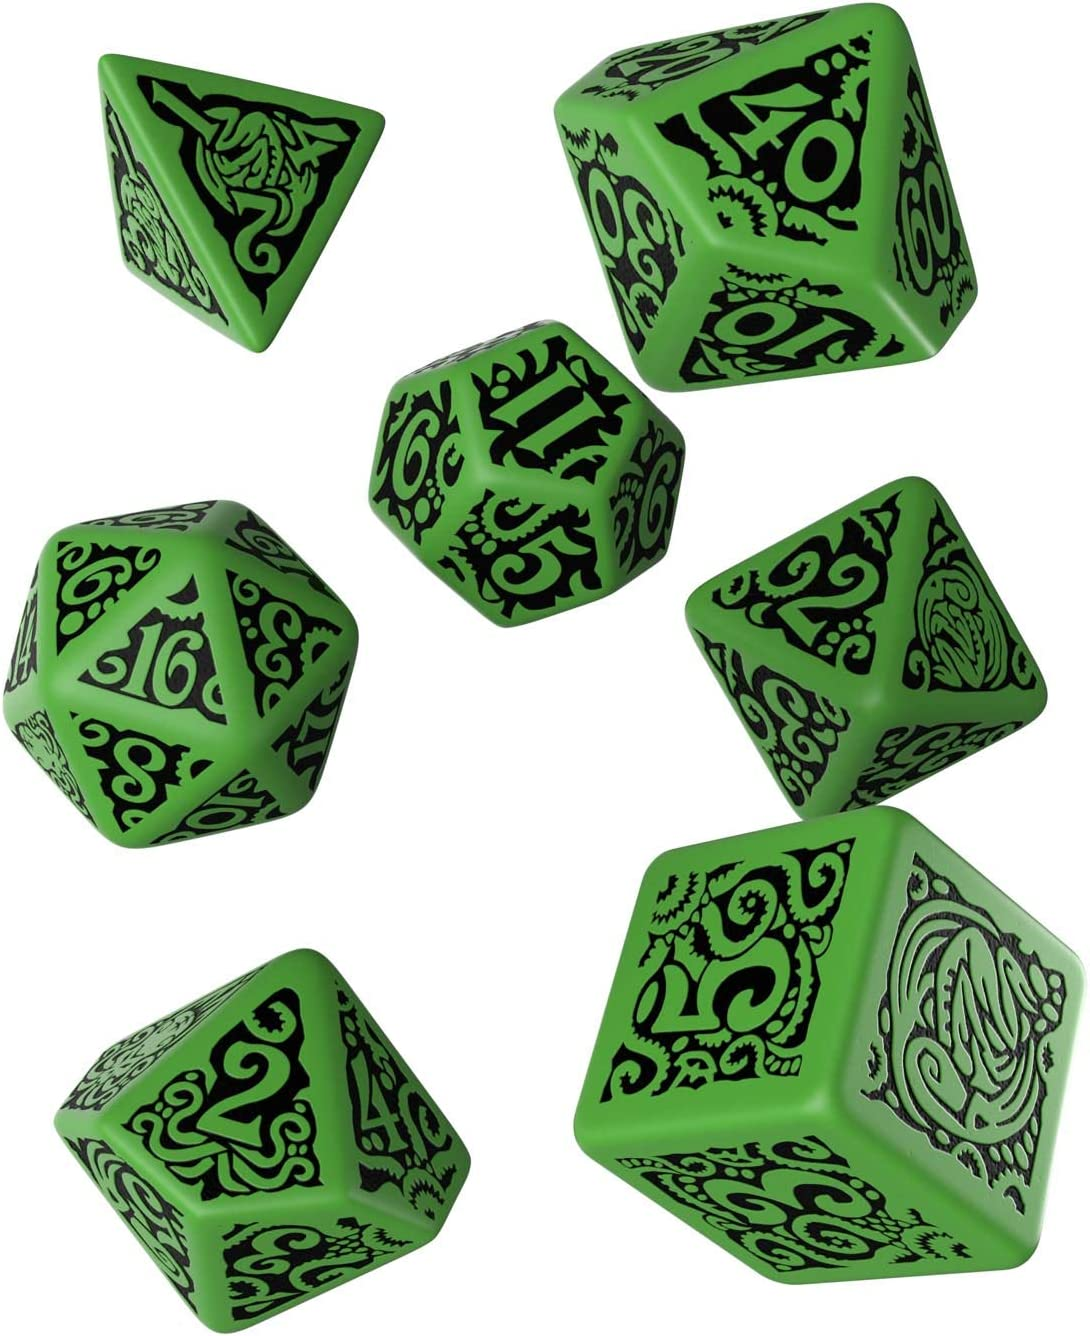 Q Workshop Call of Cthulhu The Outer Gods Cthulhu RPG Ornamented Dice Set 7 Polyhedral Pieces: Amazon.es: Juguetes y juegos